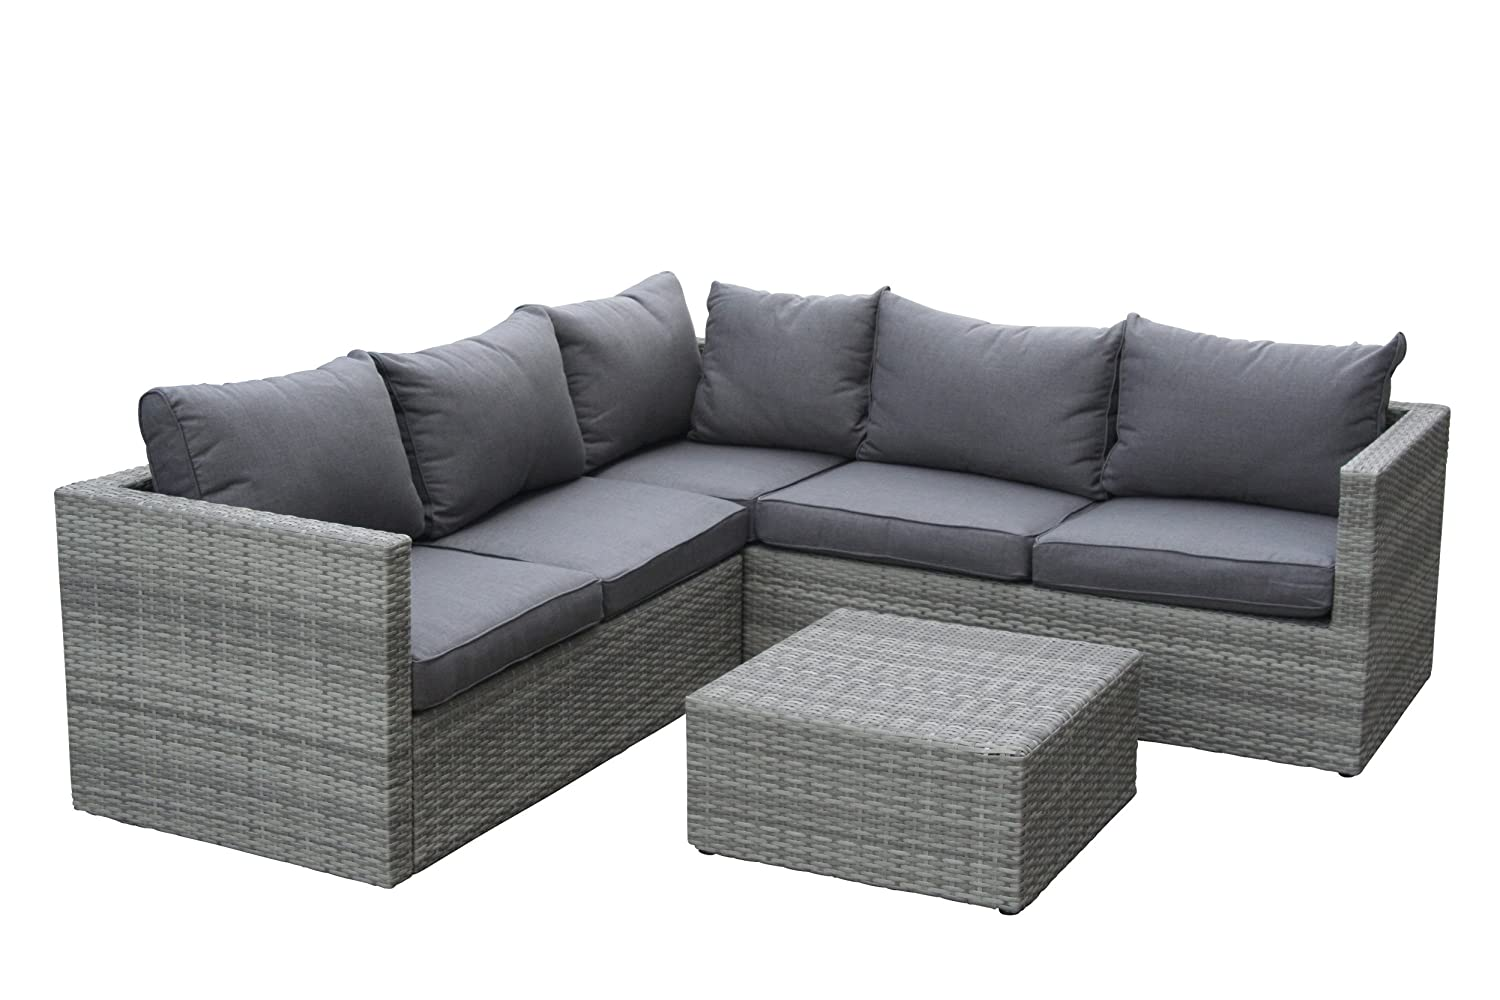 Poly rattan sofa lounge set malta grau gartenm bel set for Sofa terrasse